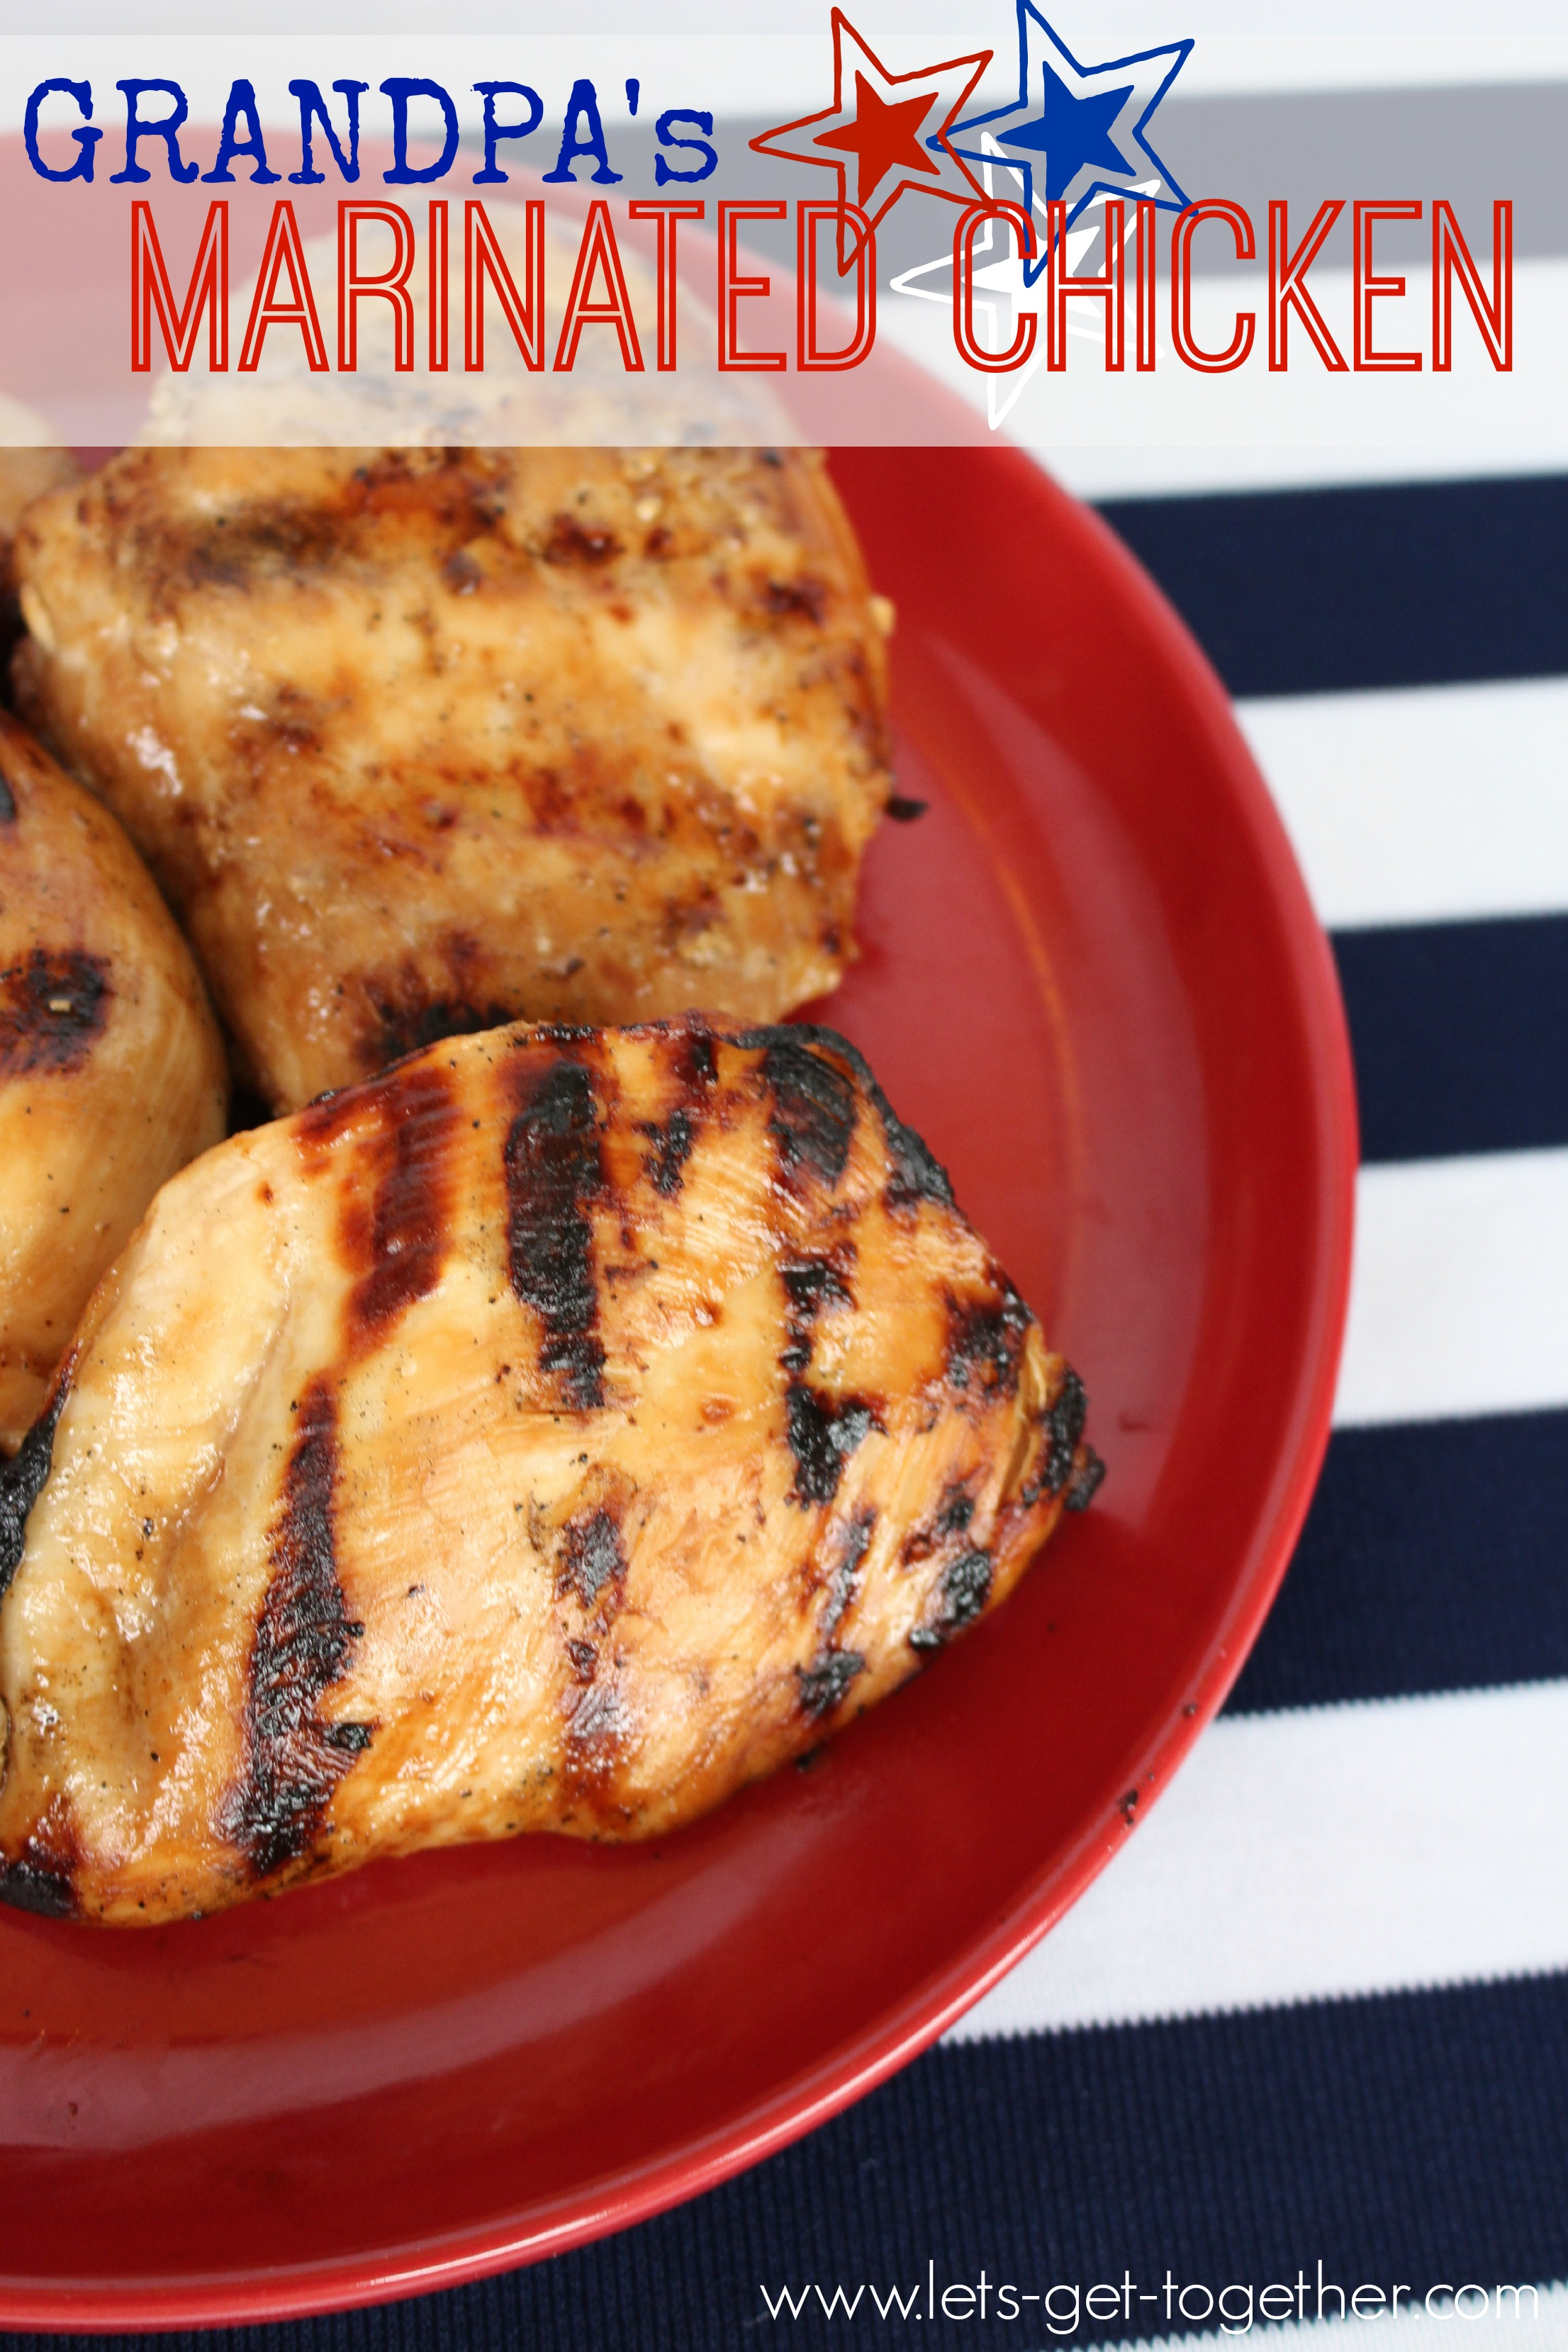 Marinated Chicken from Let's Get Together